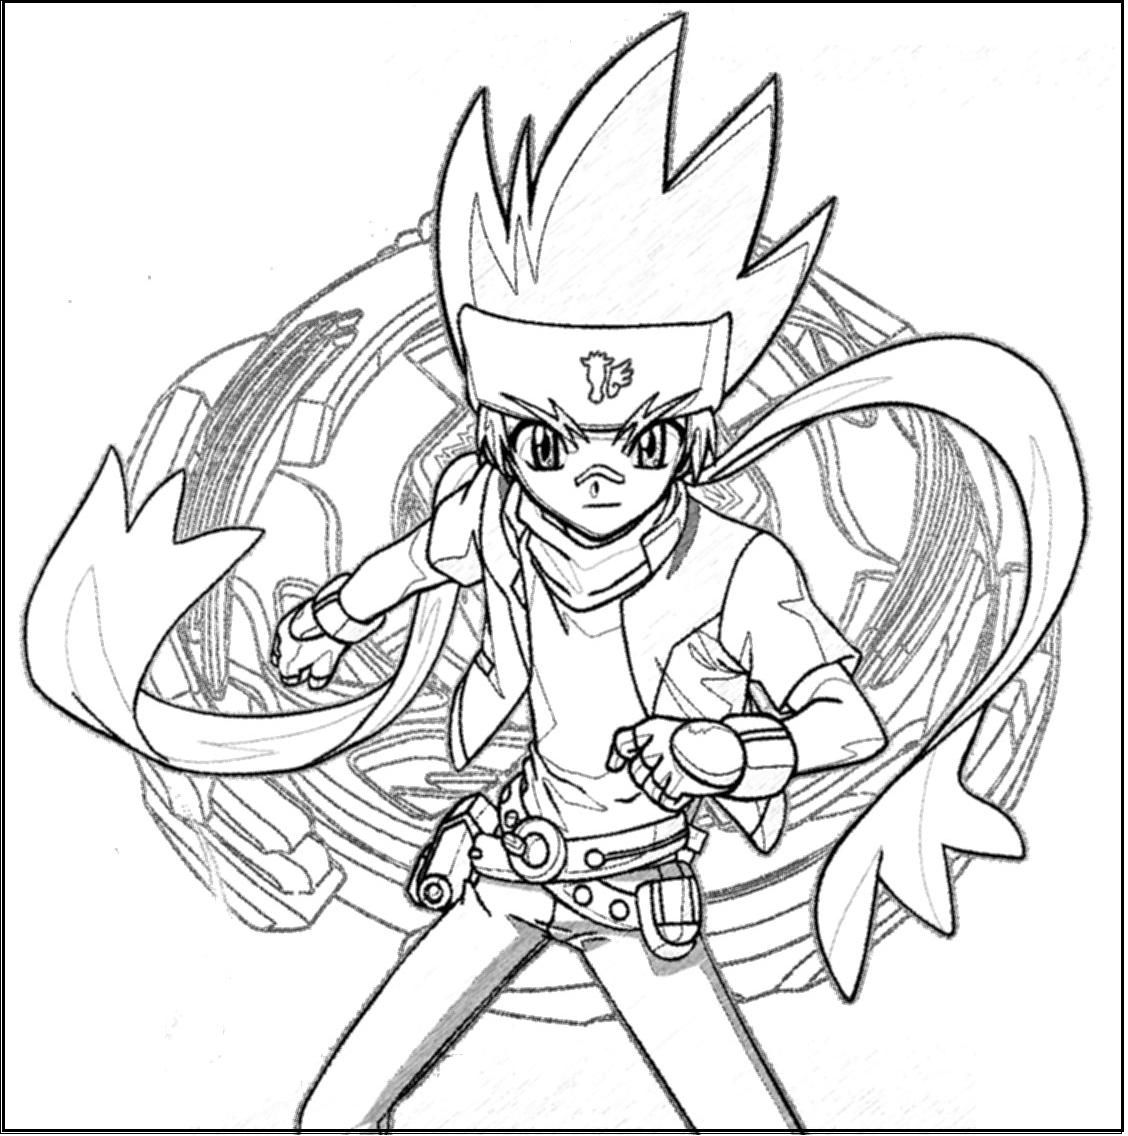 Free Printable Beyblade Coloring Pages For Kids With Images Cartoon Coloring Pages Coloring Pages For Kids Coloring Pages